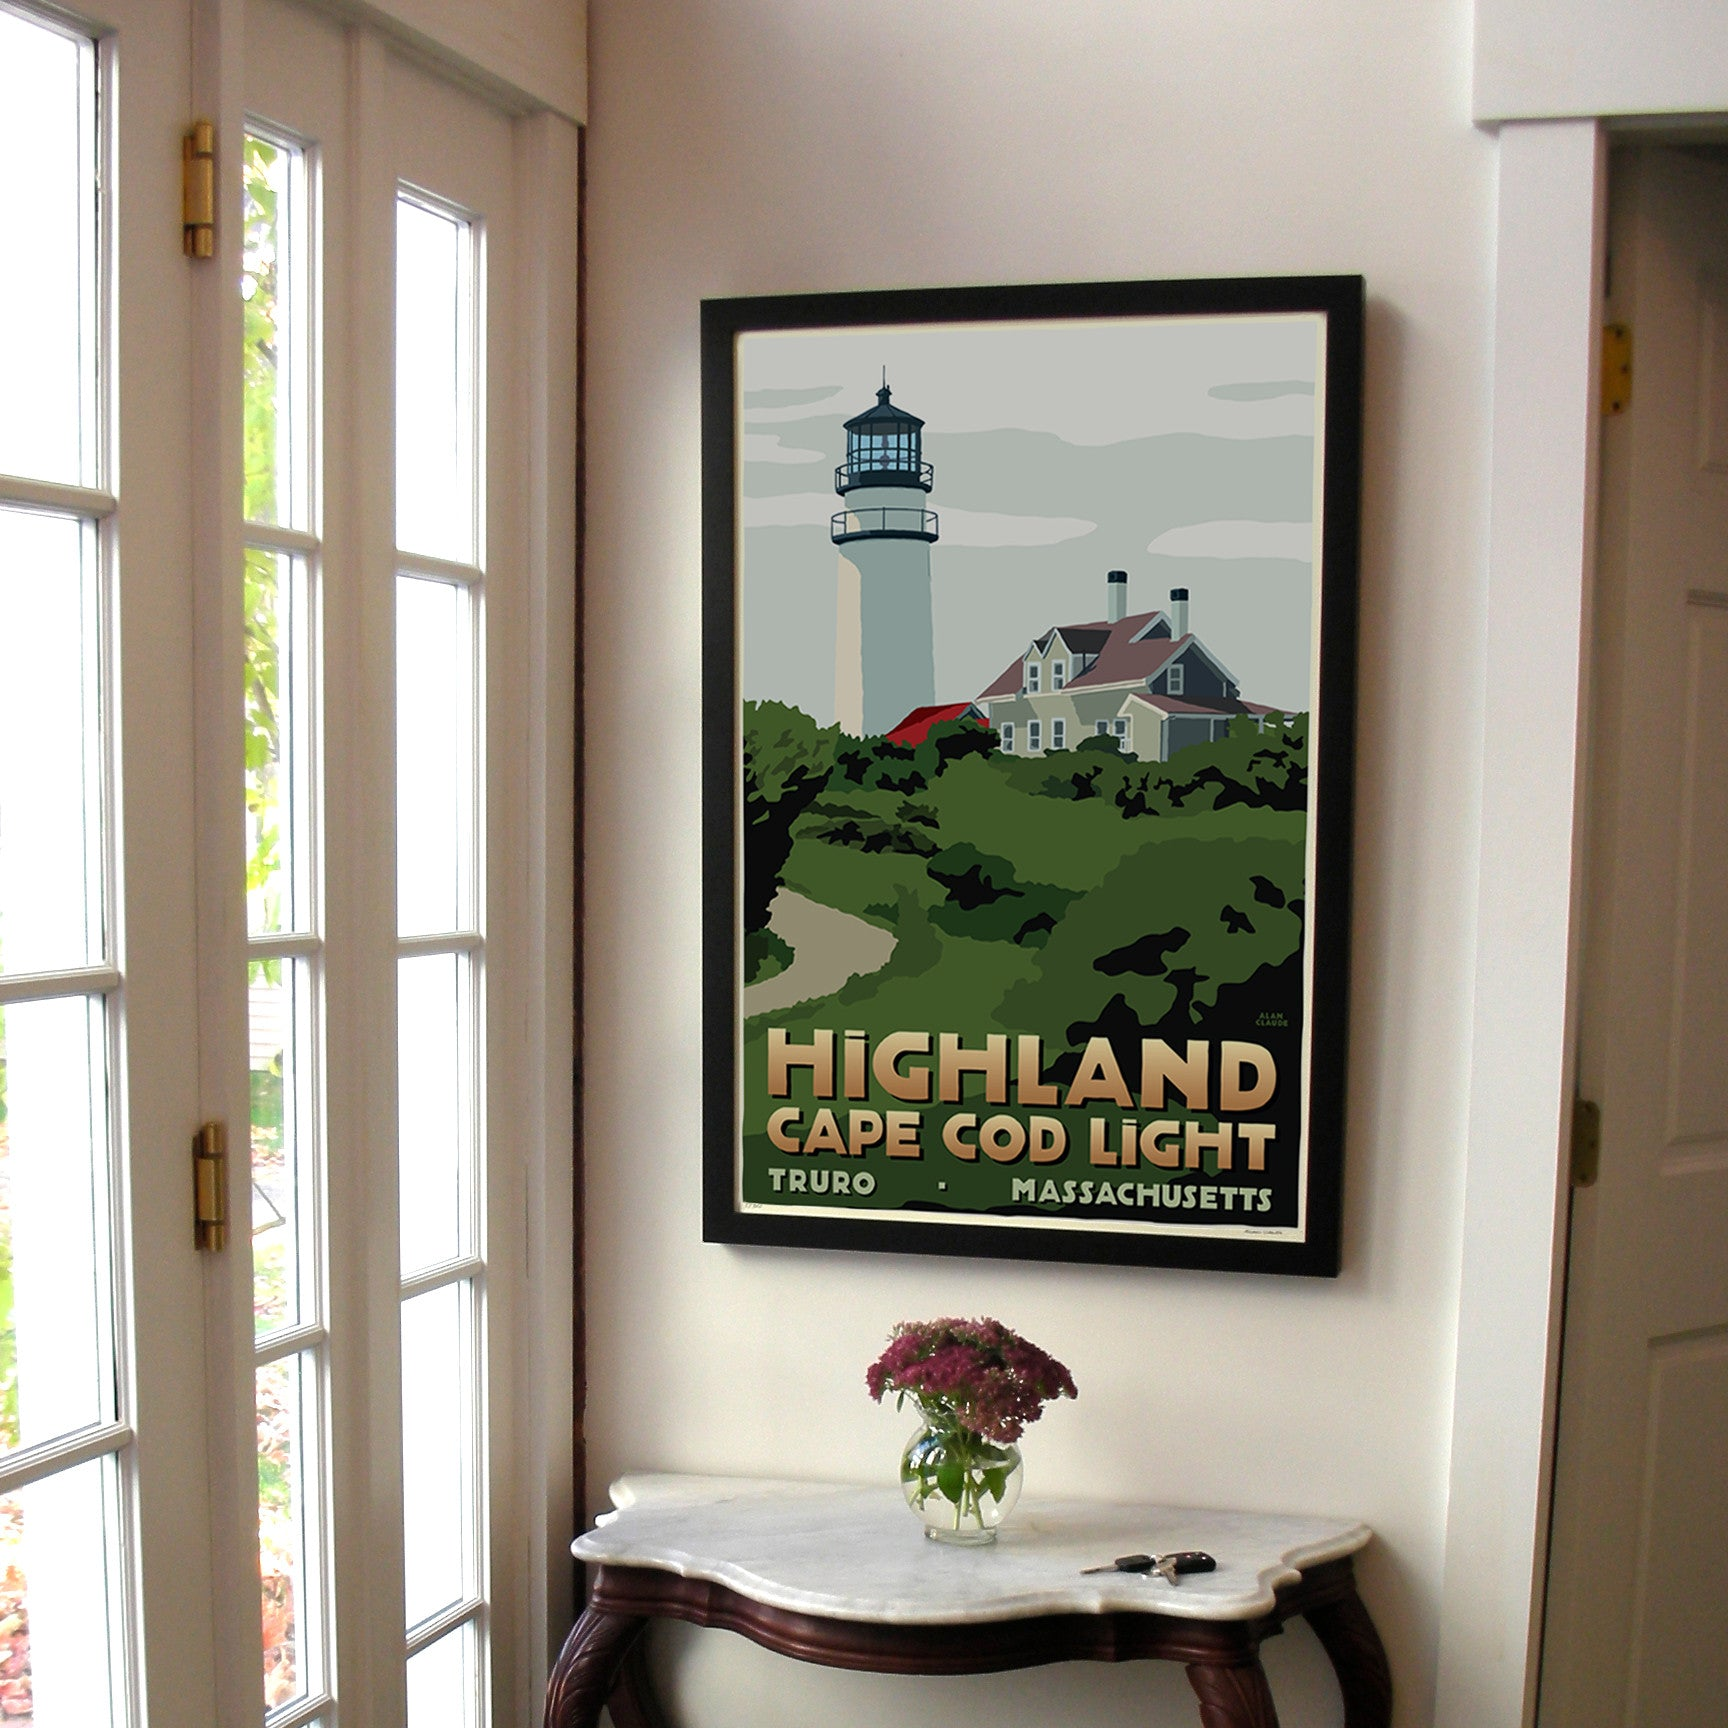 "Highland Light Art Print 24"" x 36"" Framed Travel Poster - Massachusetts"